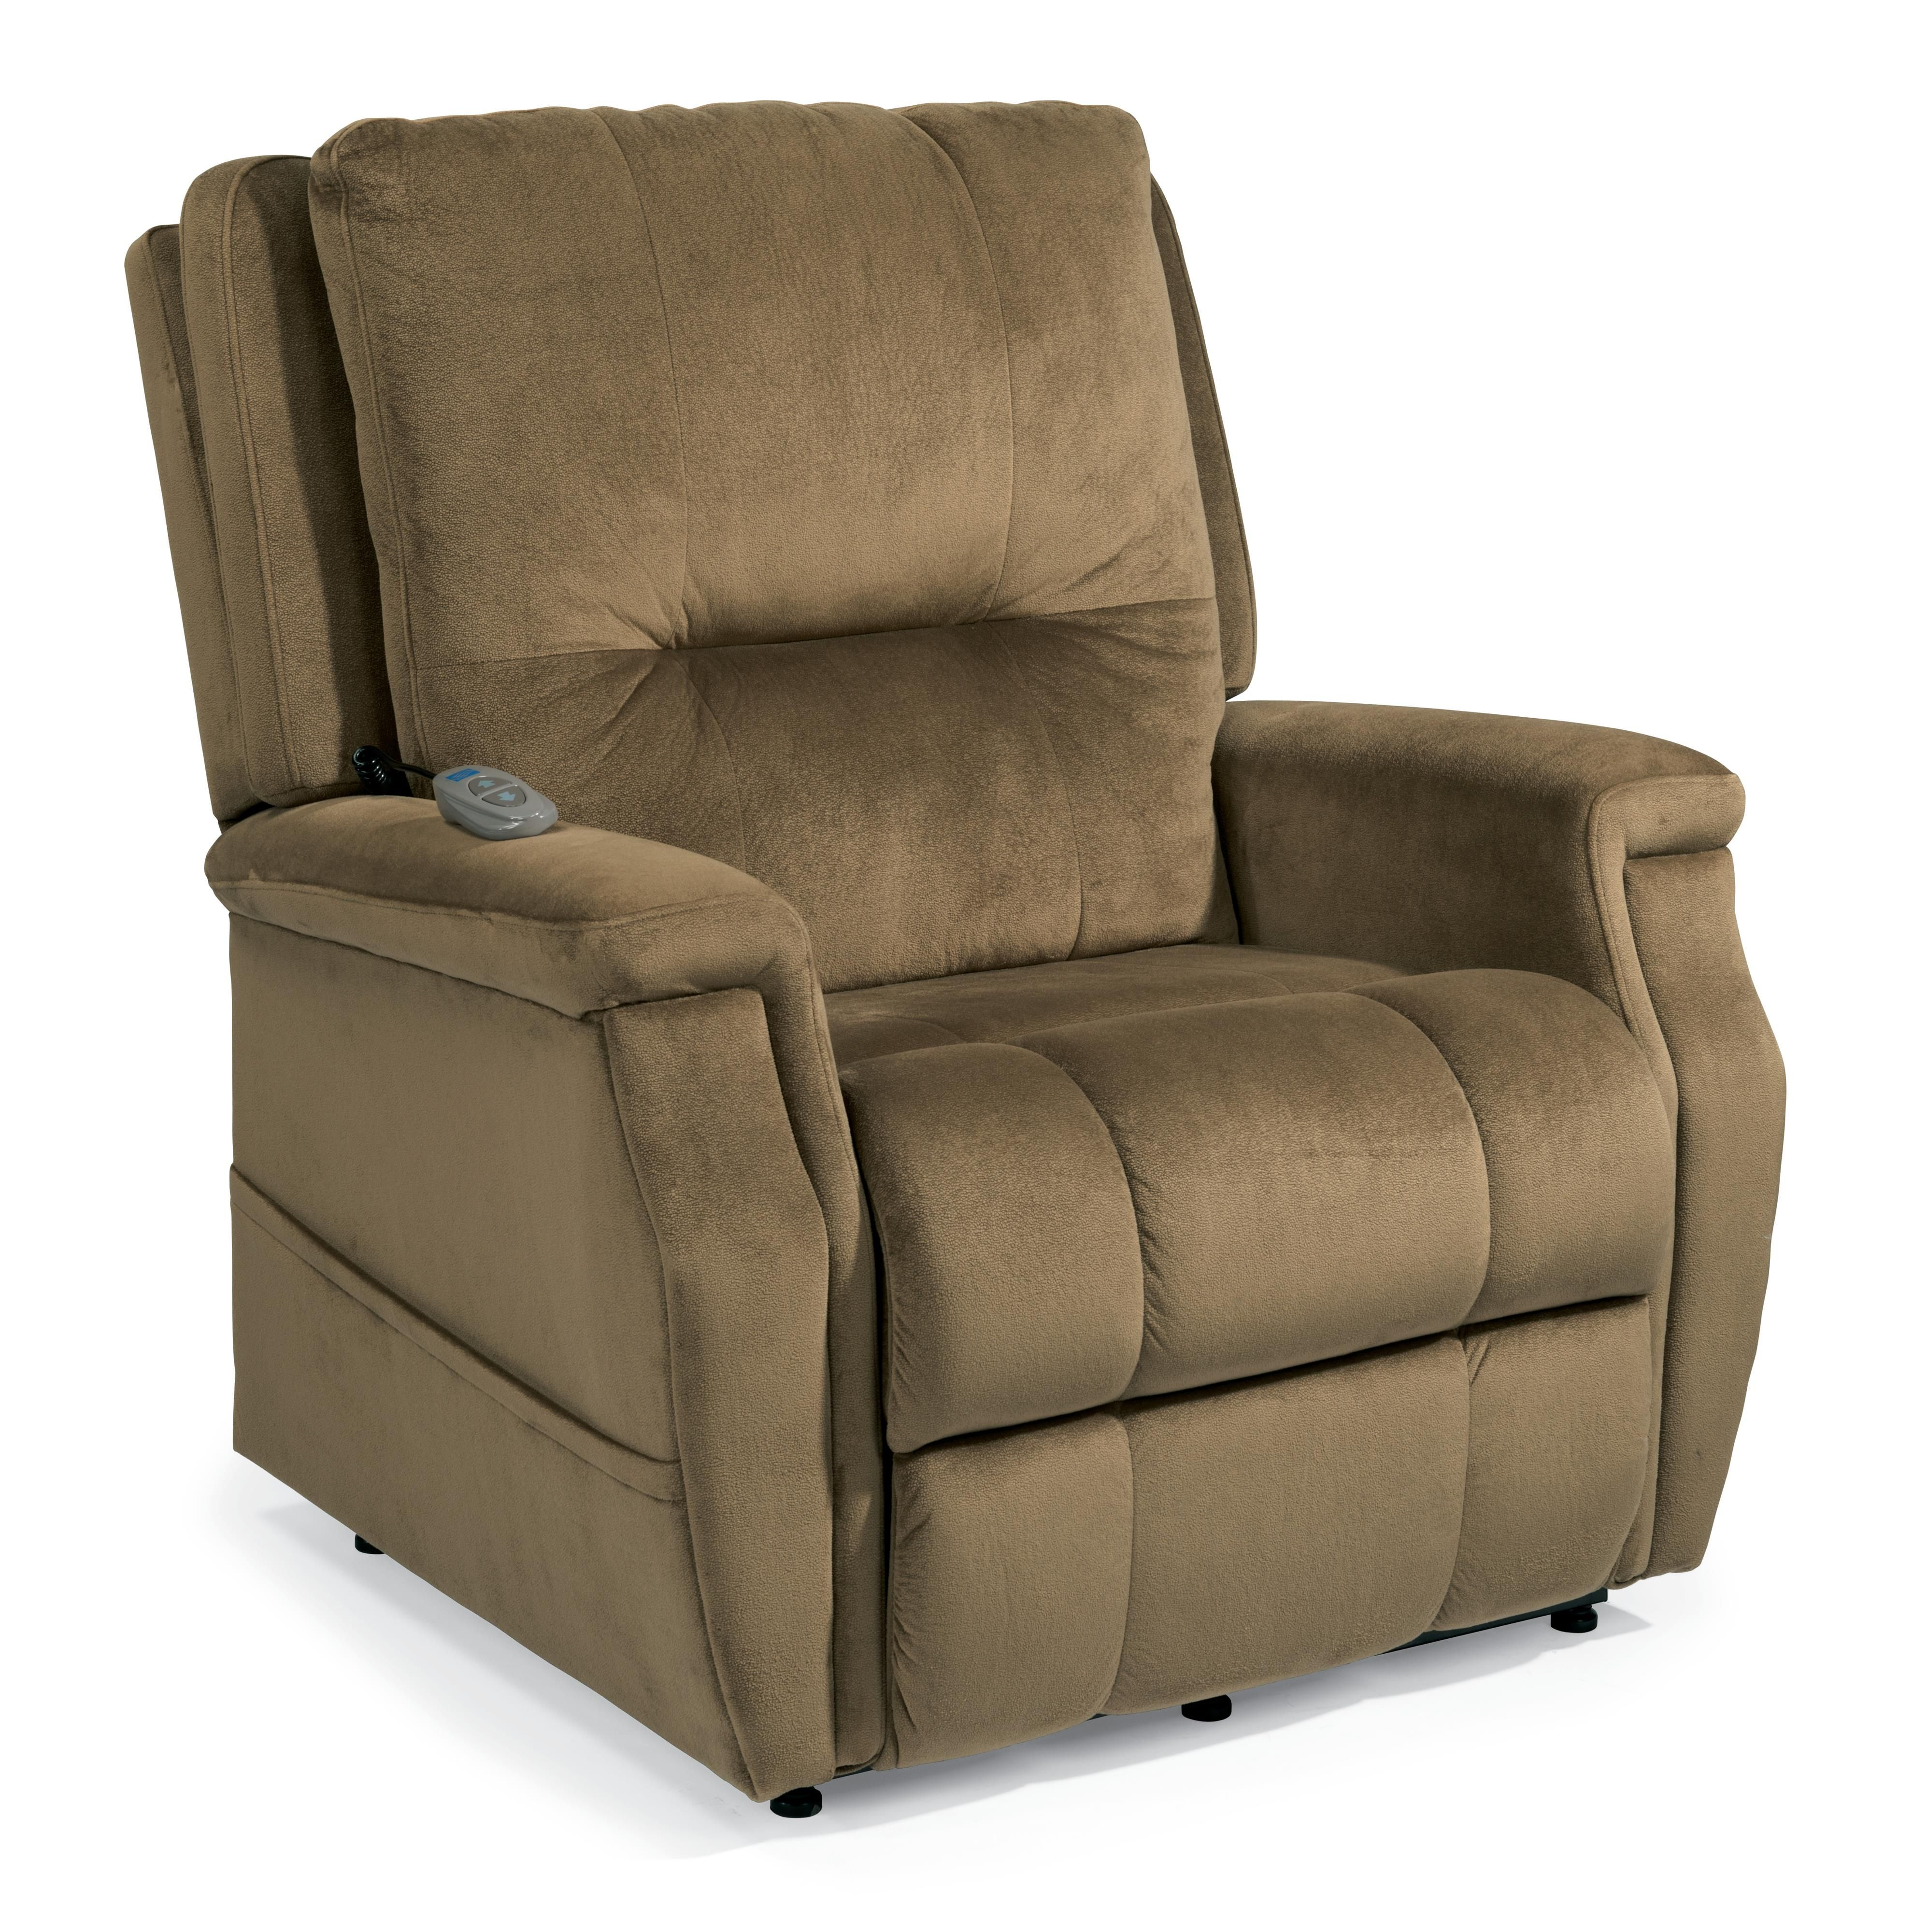 Latitudes Lift Chairs Julius Lift Recliner By Flexsteel At